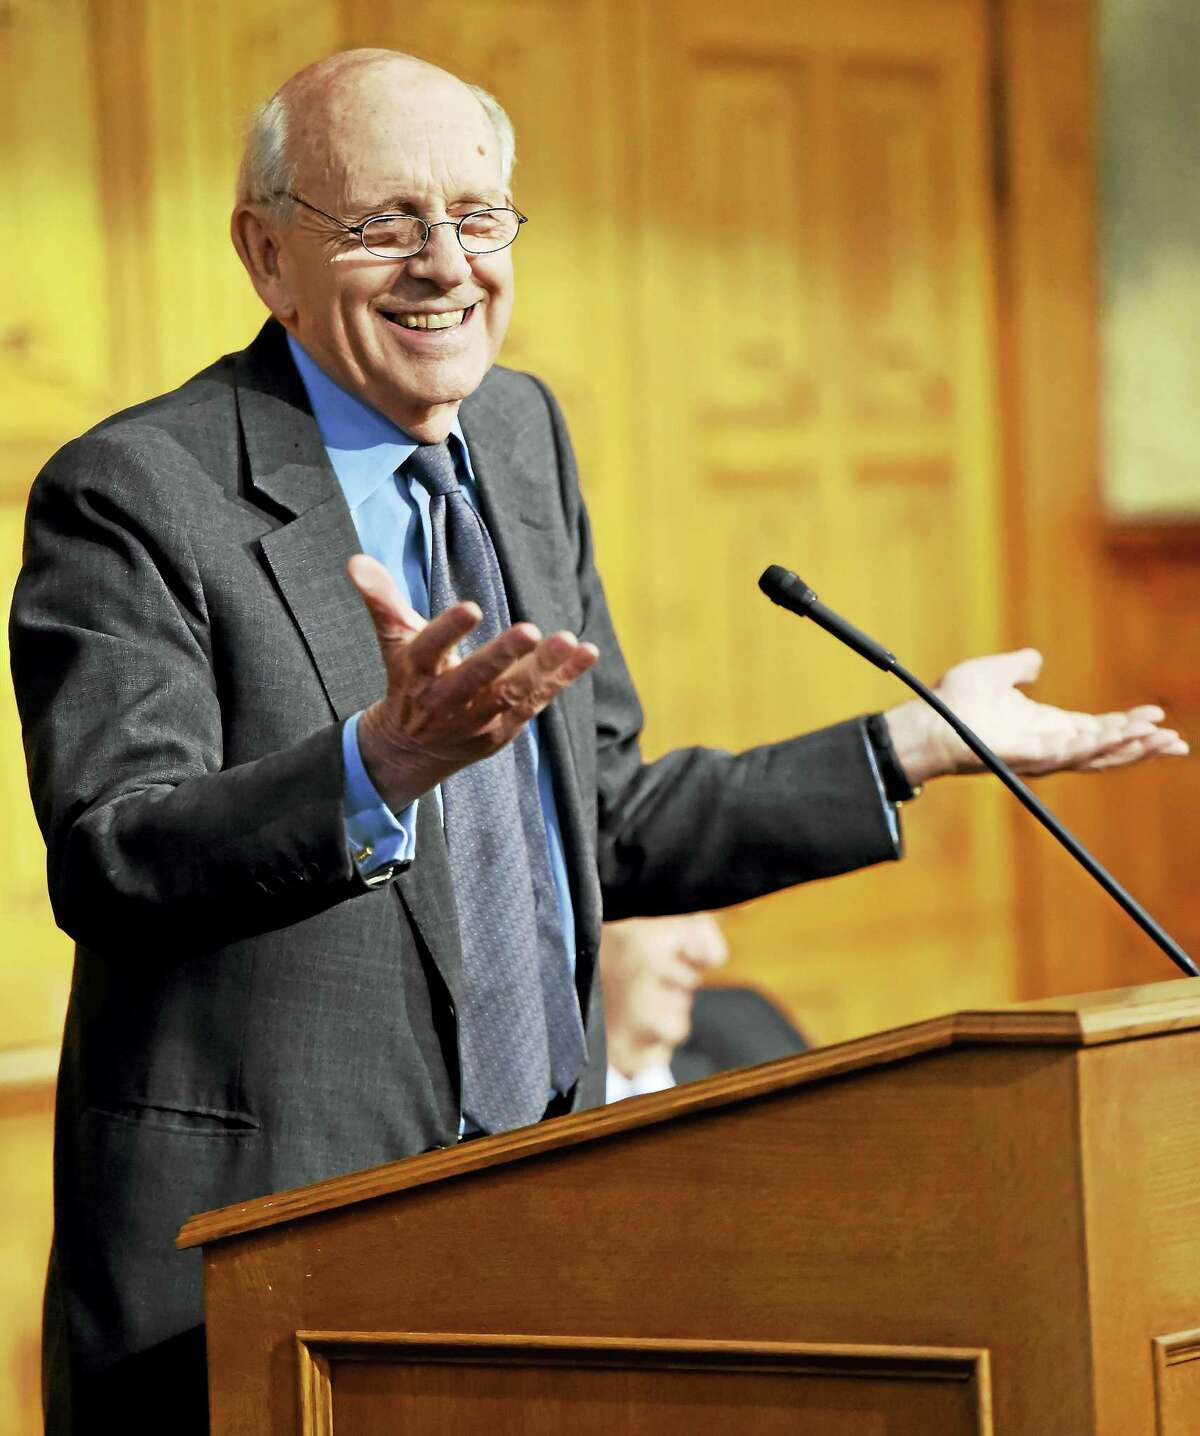 Supreme Court Justice Stephen Breyer gives a talk at Yale Law School in New Haven Wednesday.